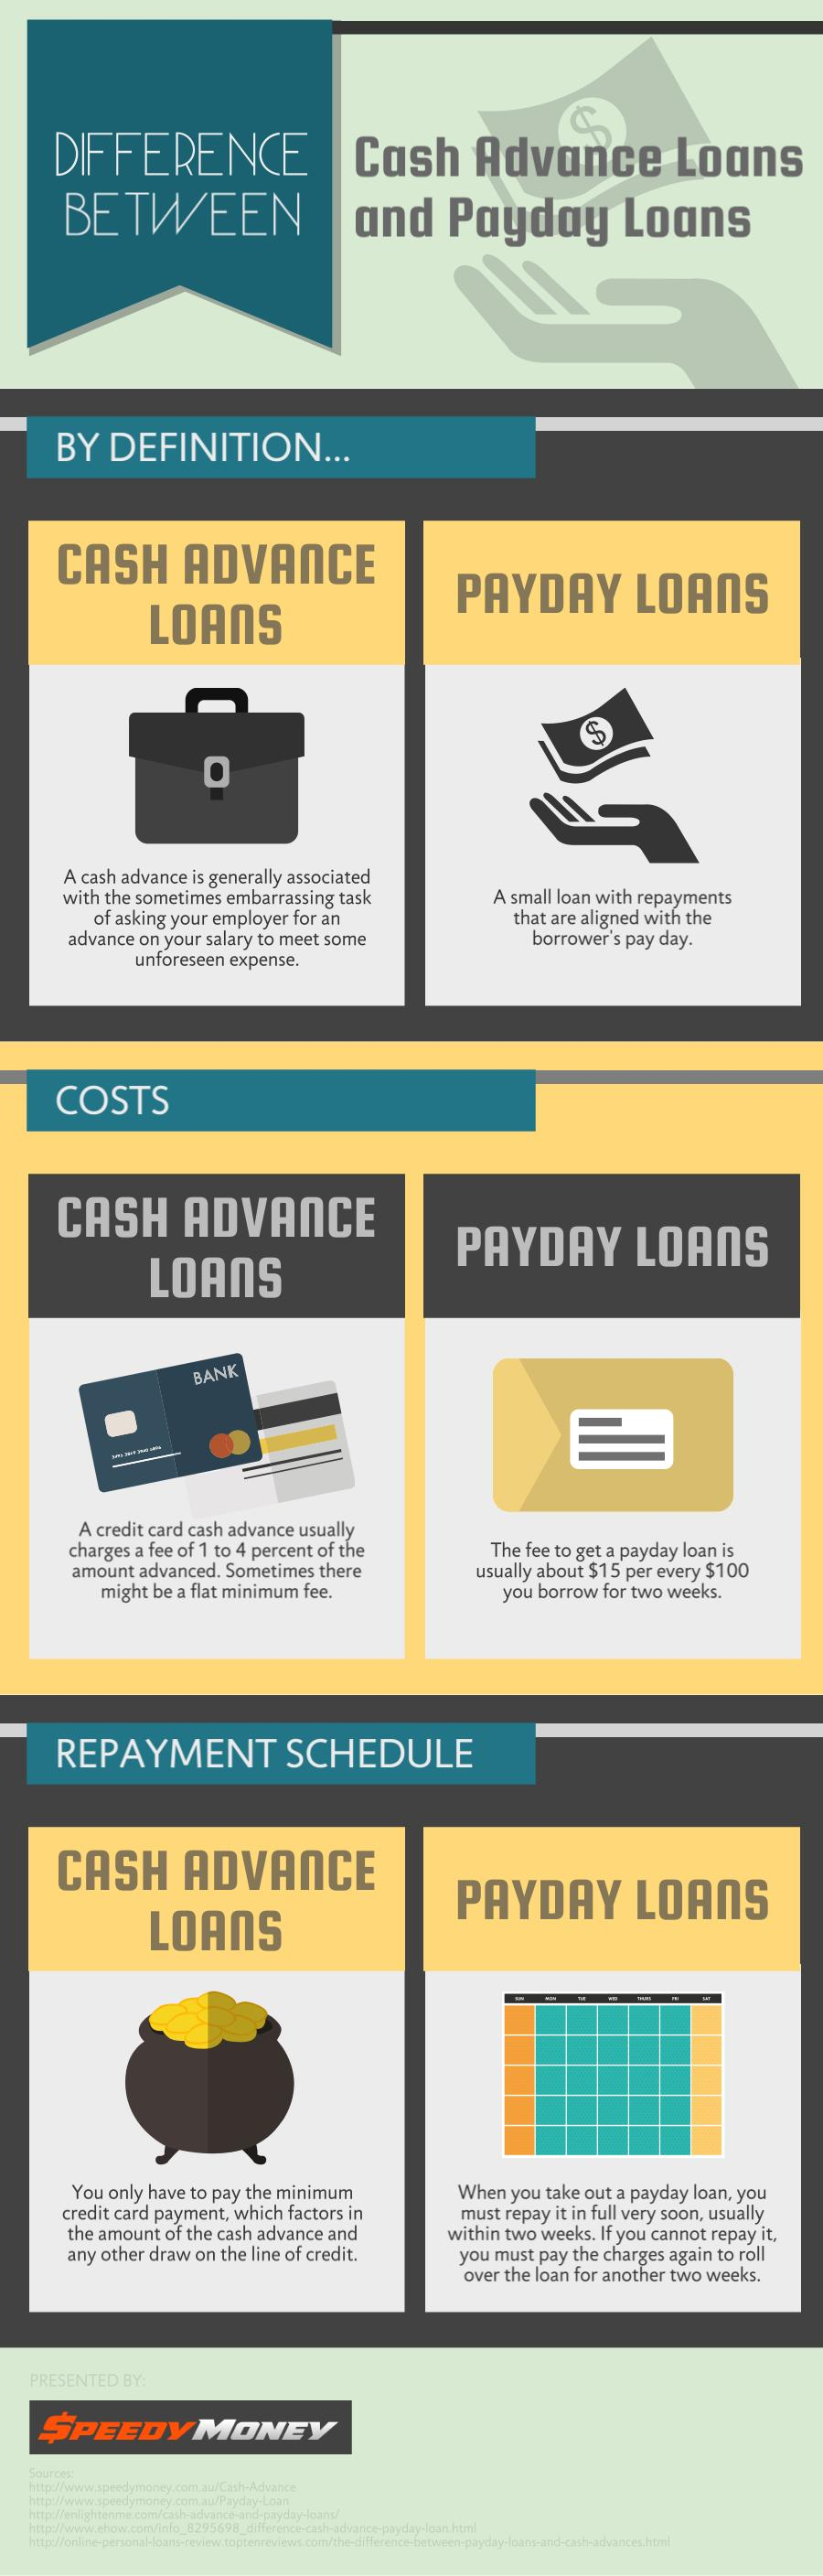 difference-between-cash-advance-loans-and-payday-loans_54f7d3b4001bf